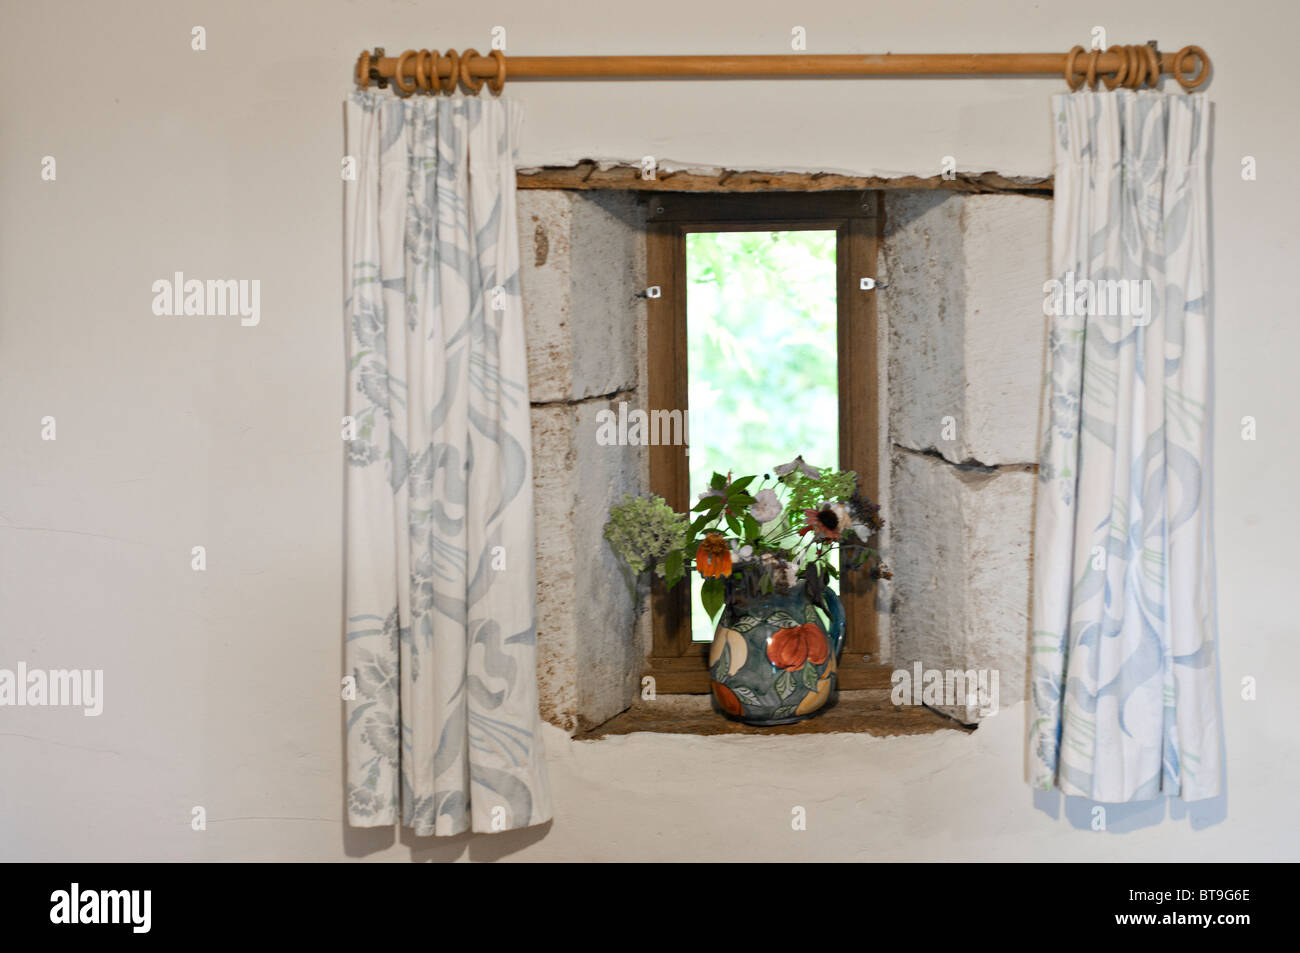 A window with curtains and a vase of flowers - Stock Image